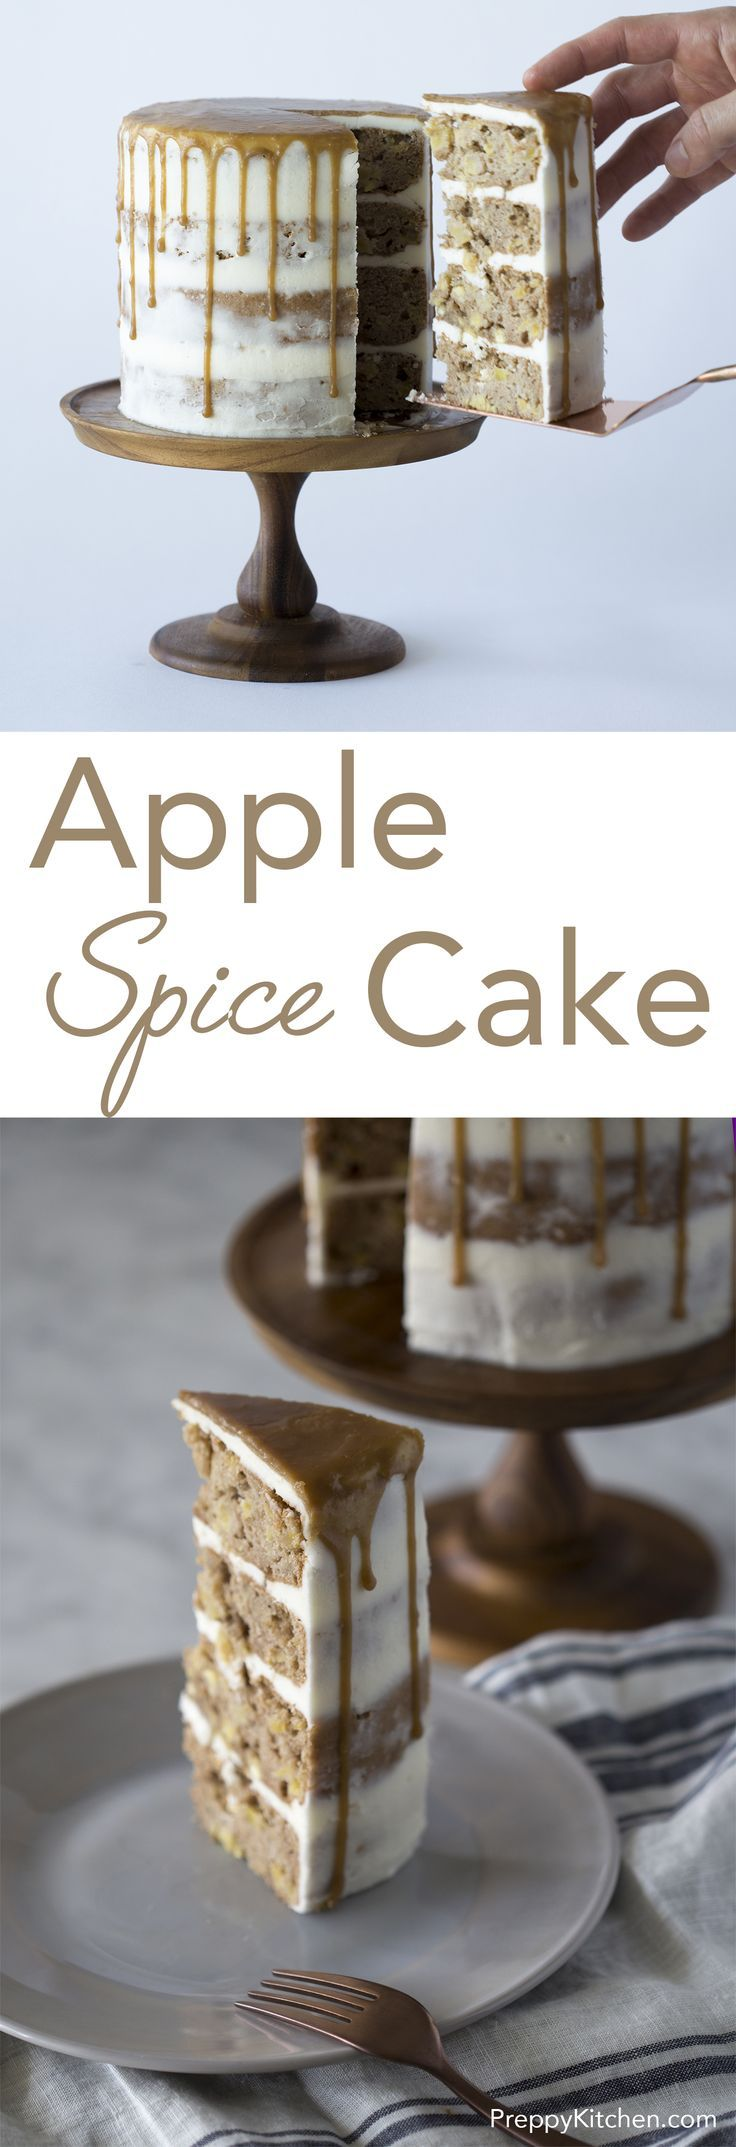 Perfect for Autumn, this delicious caramel apple spice cake is packed with apples, Fall spices and caramel. Click over for full recipe andante video! via /preppykitchen/